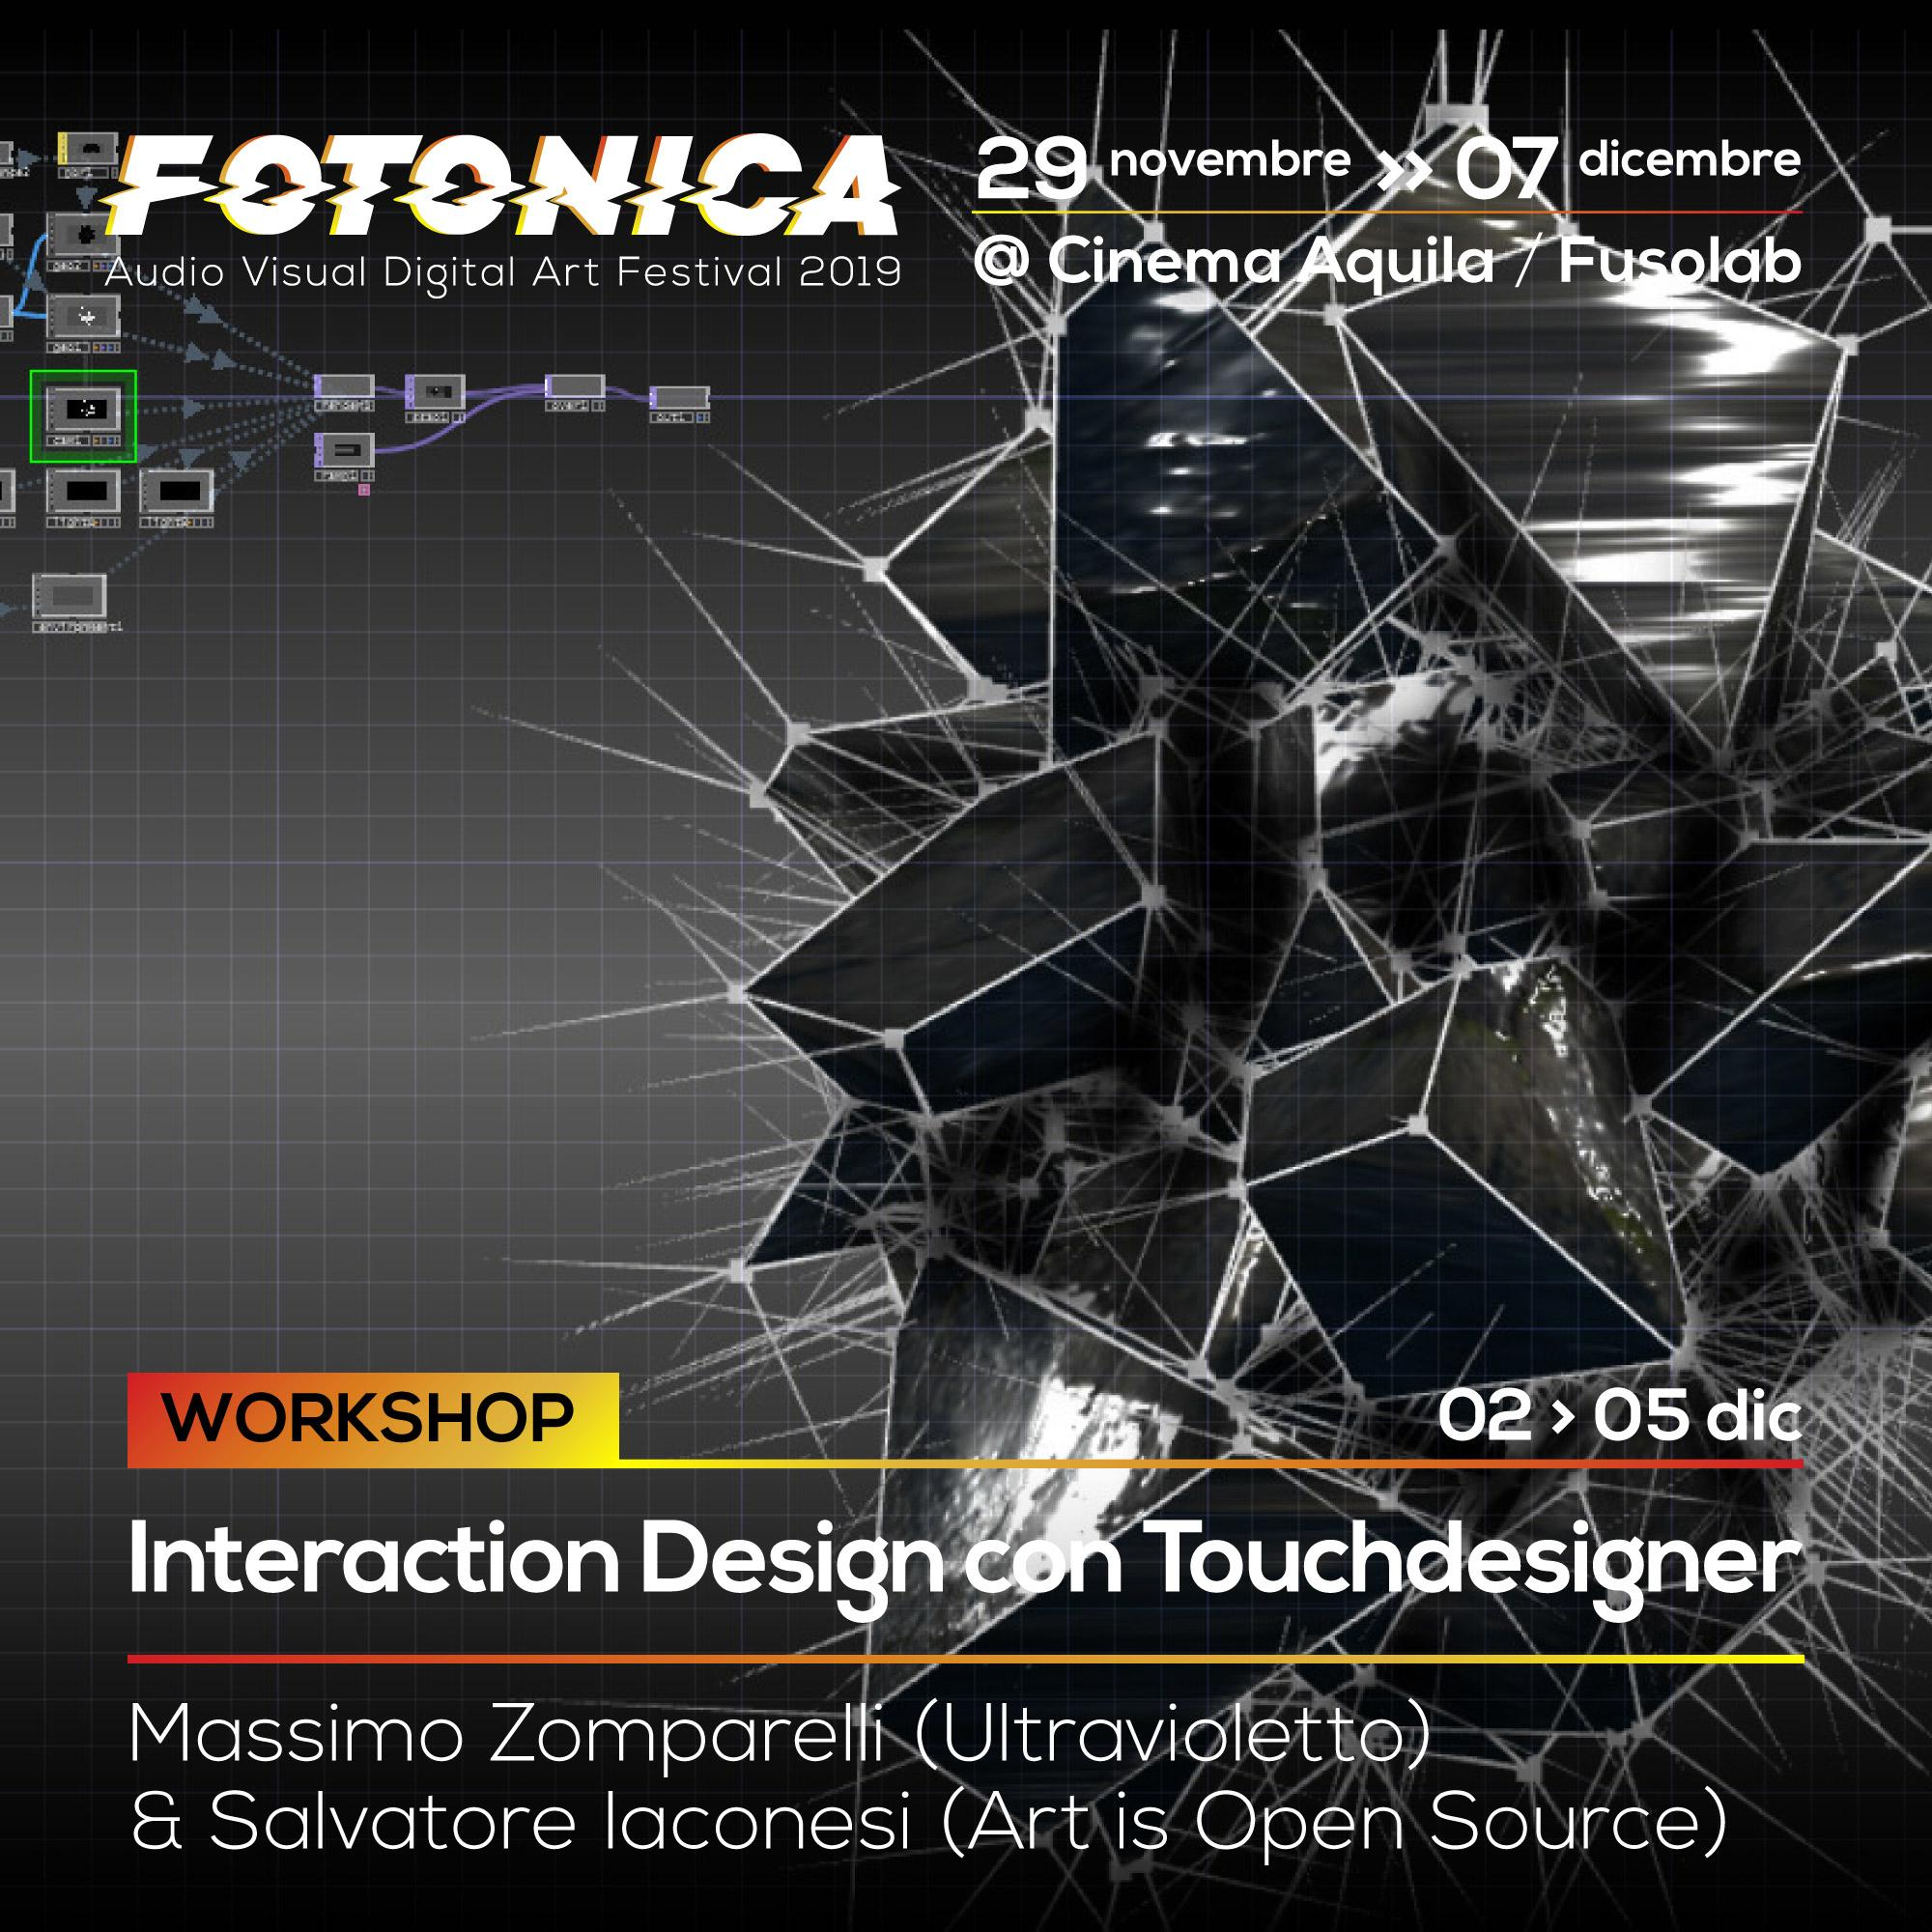 F2019 ws interactive touch